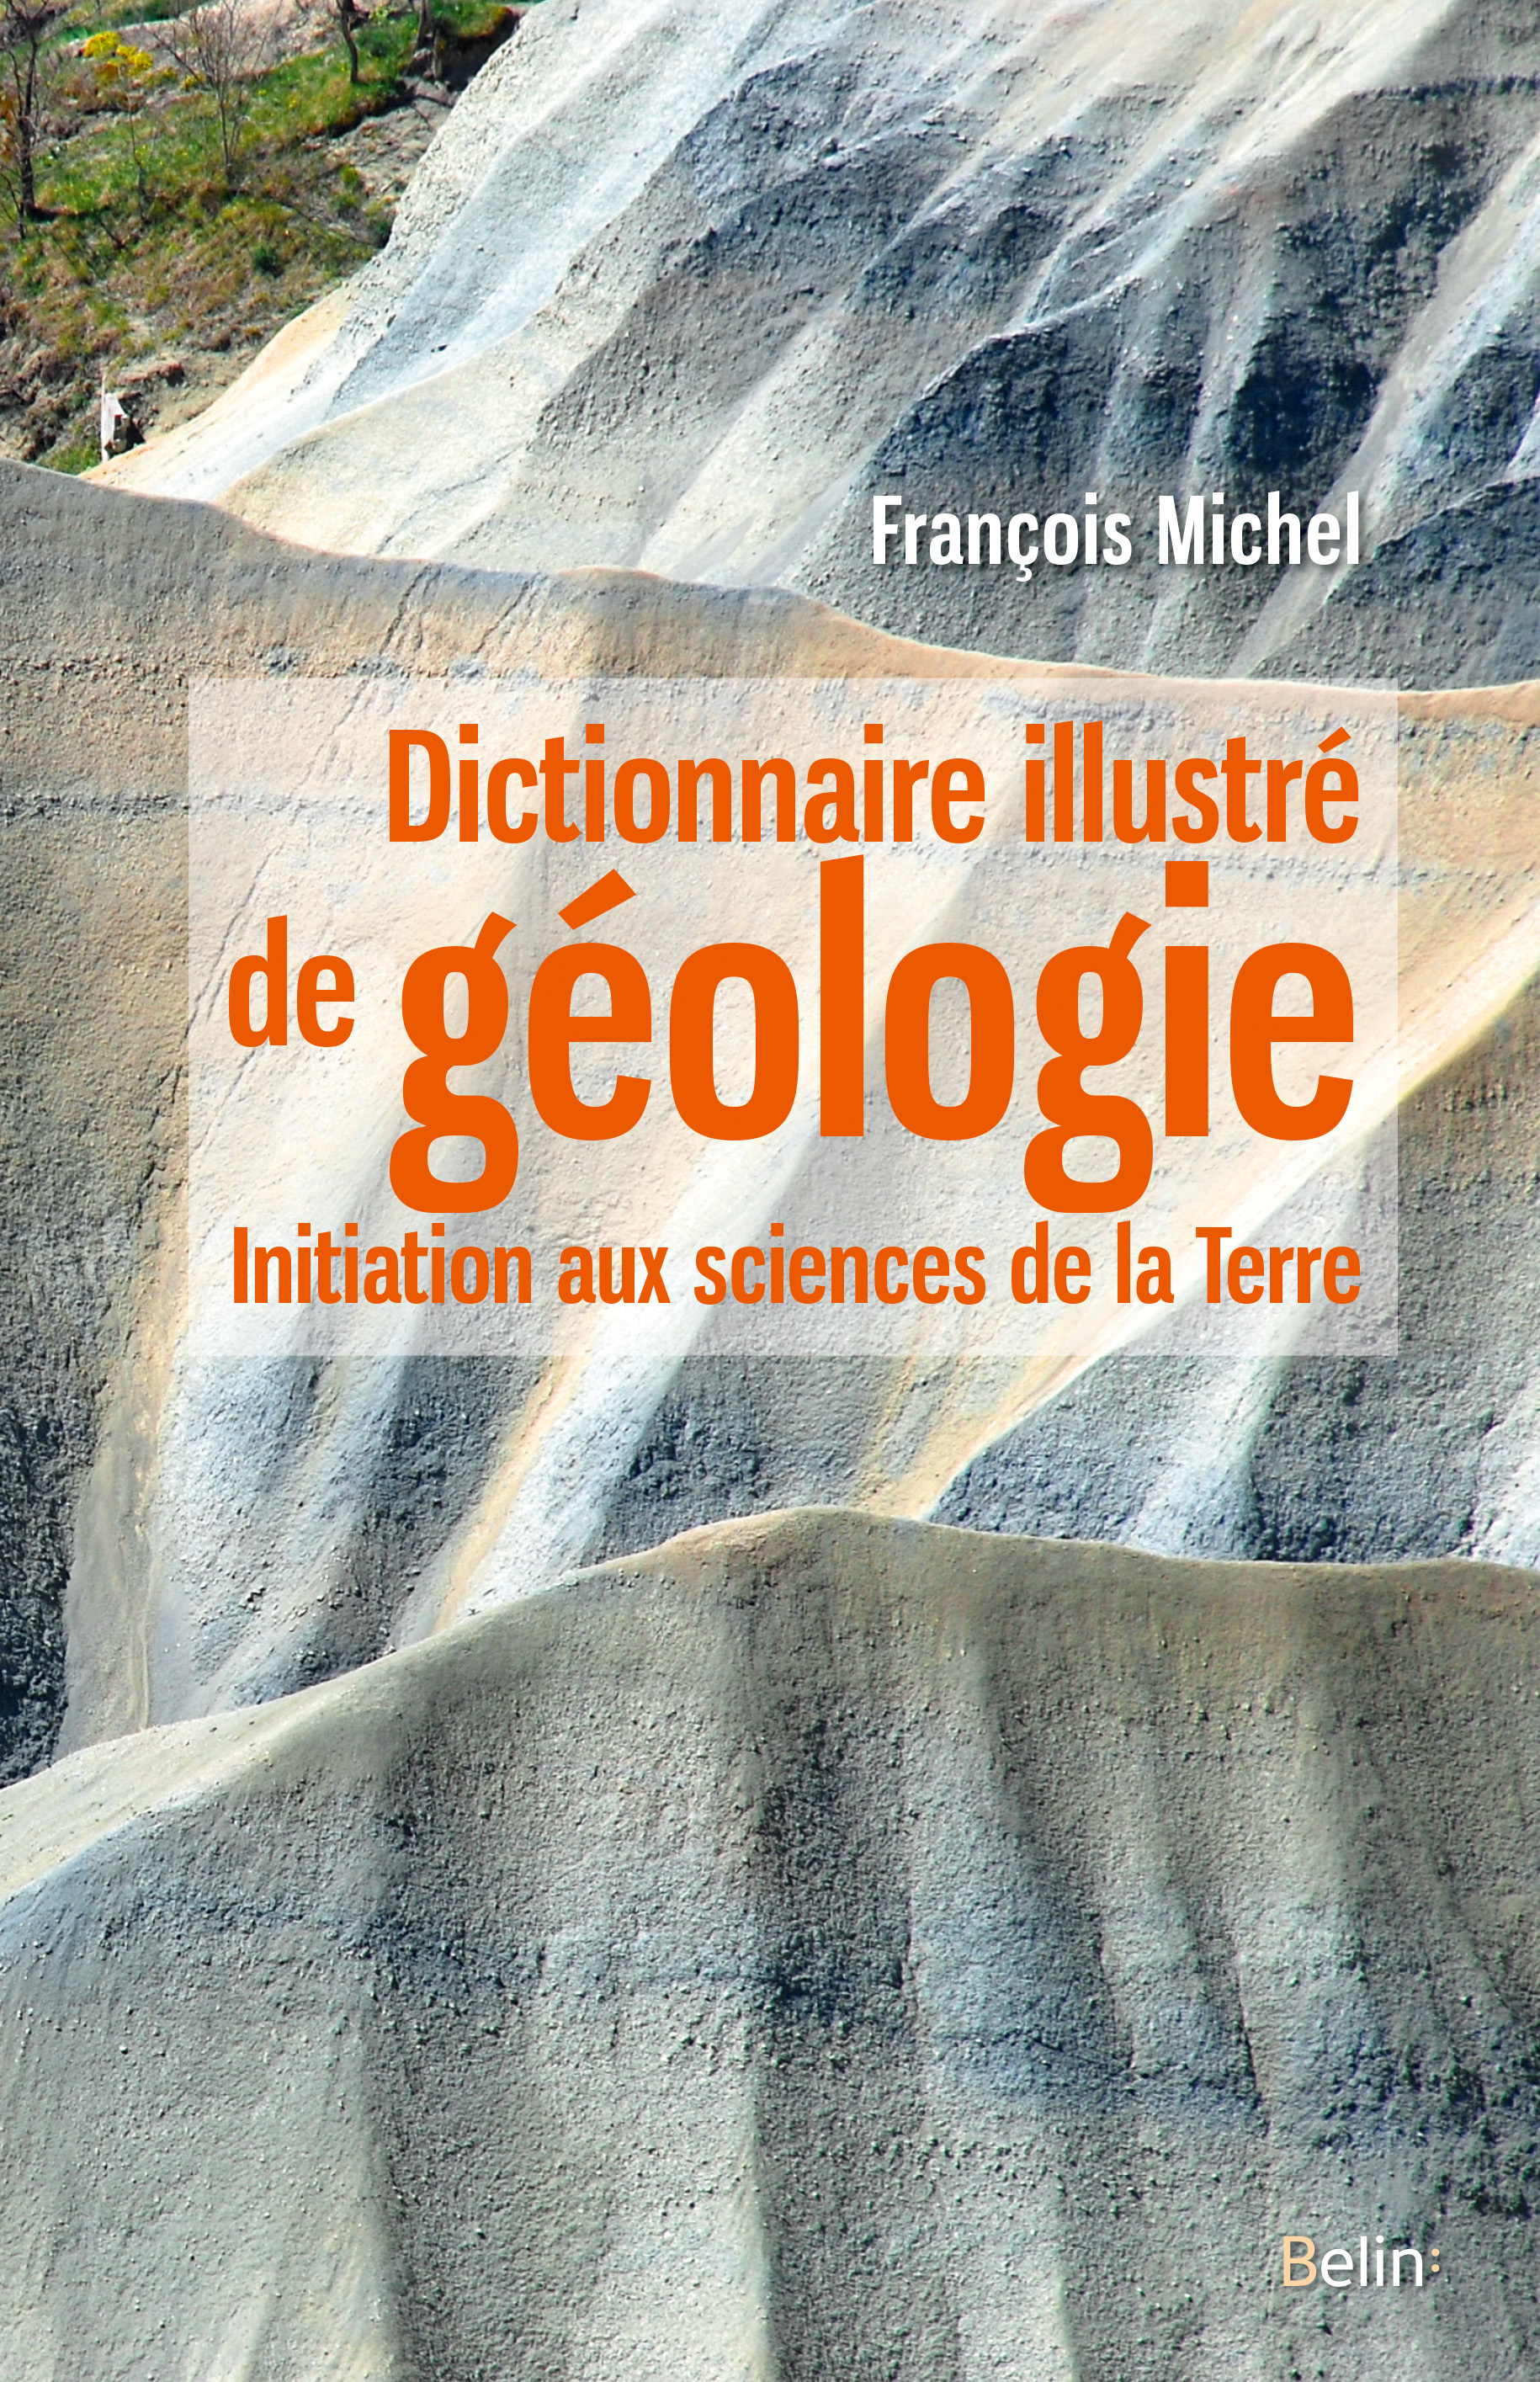 DICTIONNAIRE ILLUSTRE DE GEOLOGIE - INITIATION AUX SCIENCES DE LA TERRE